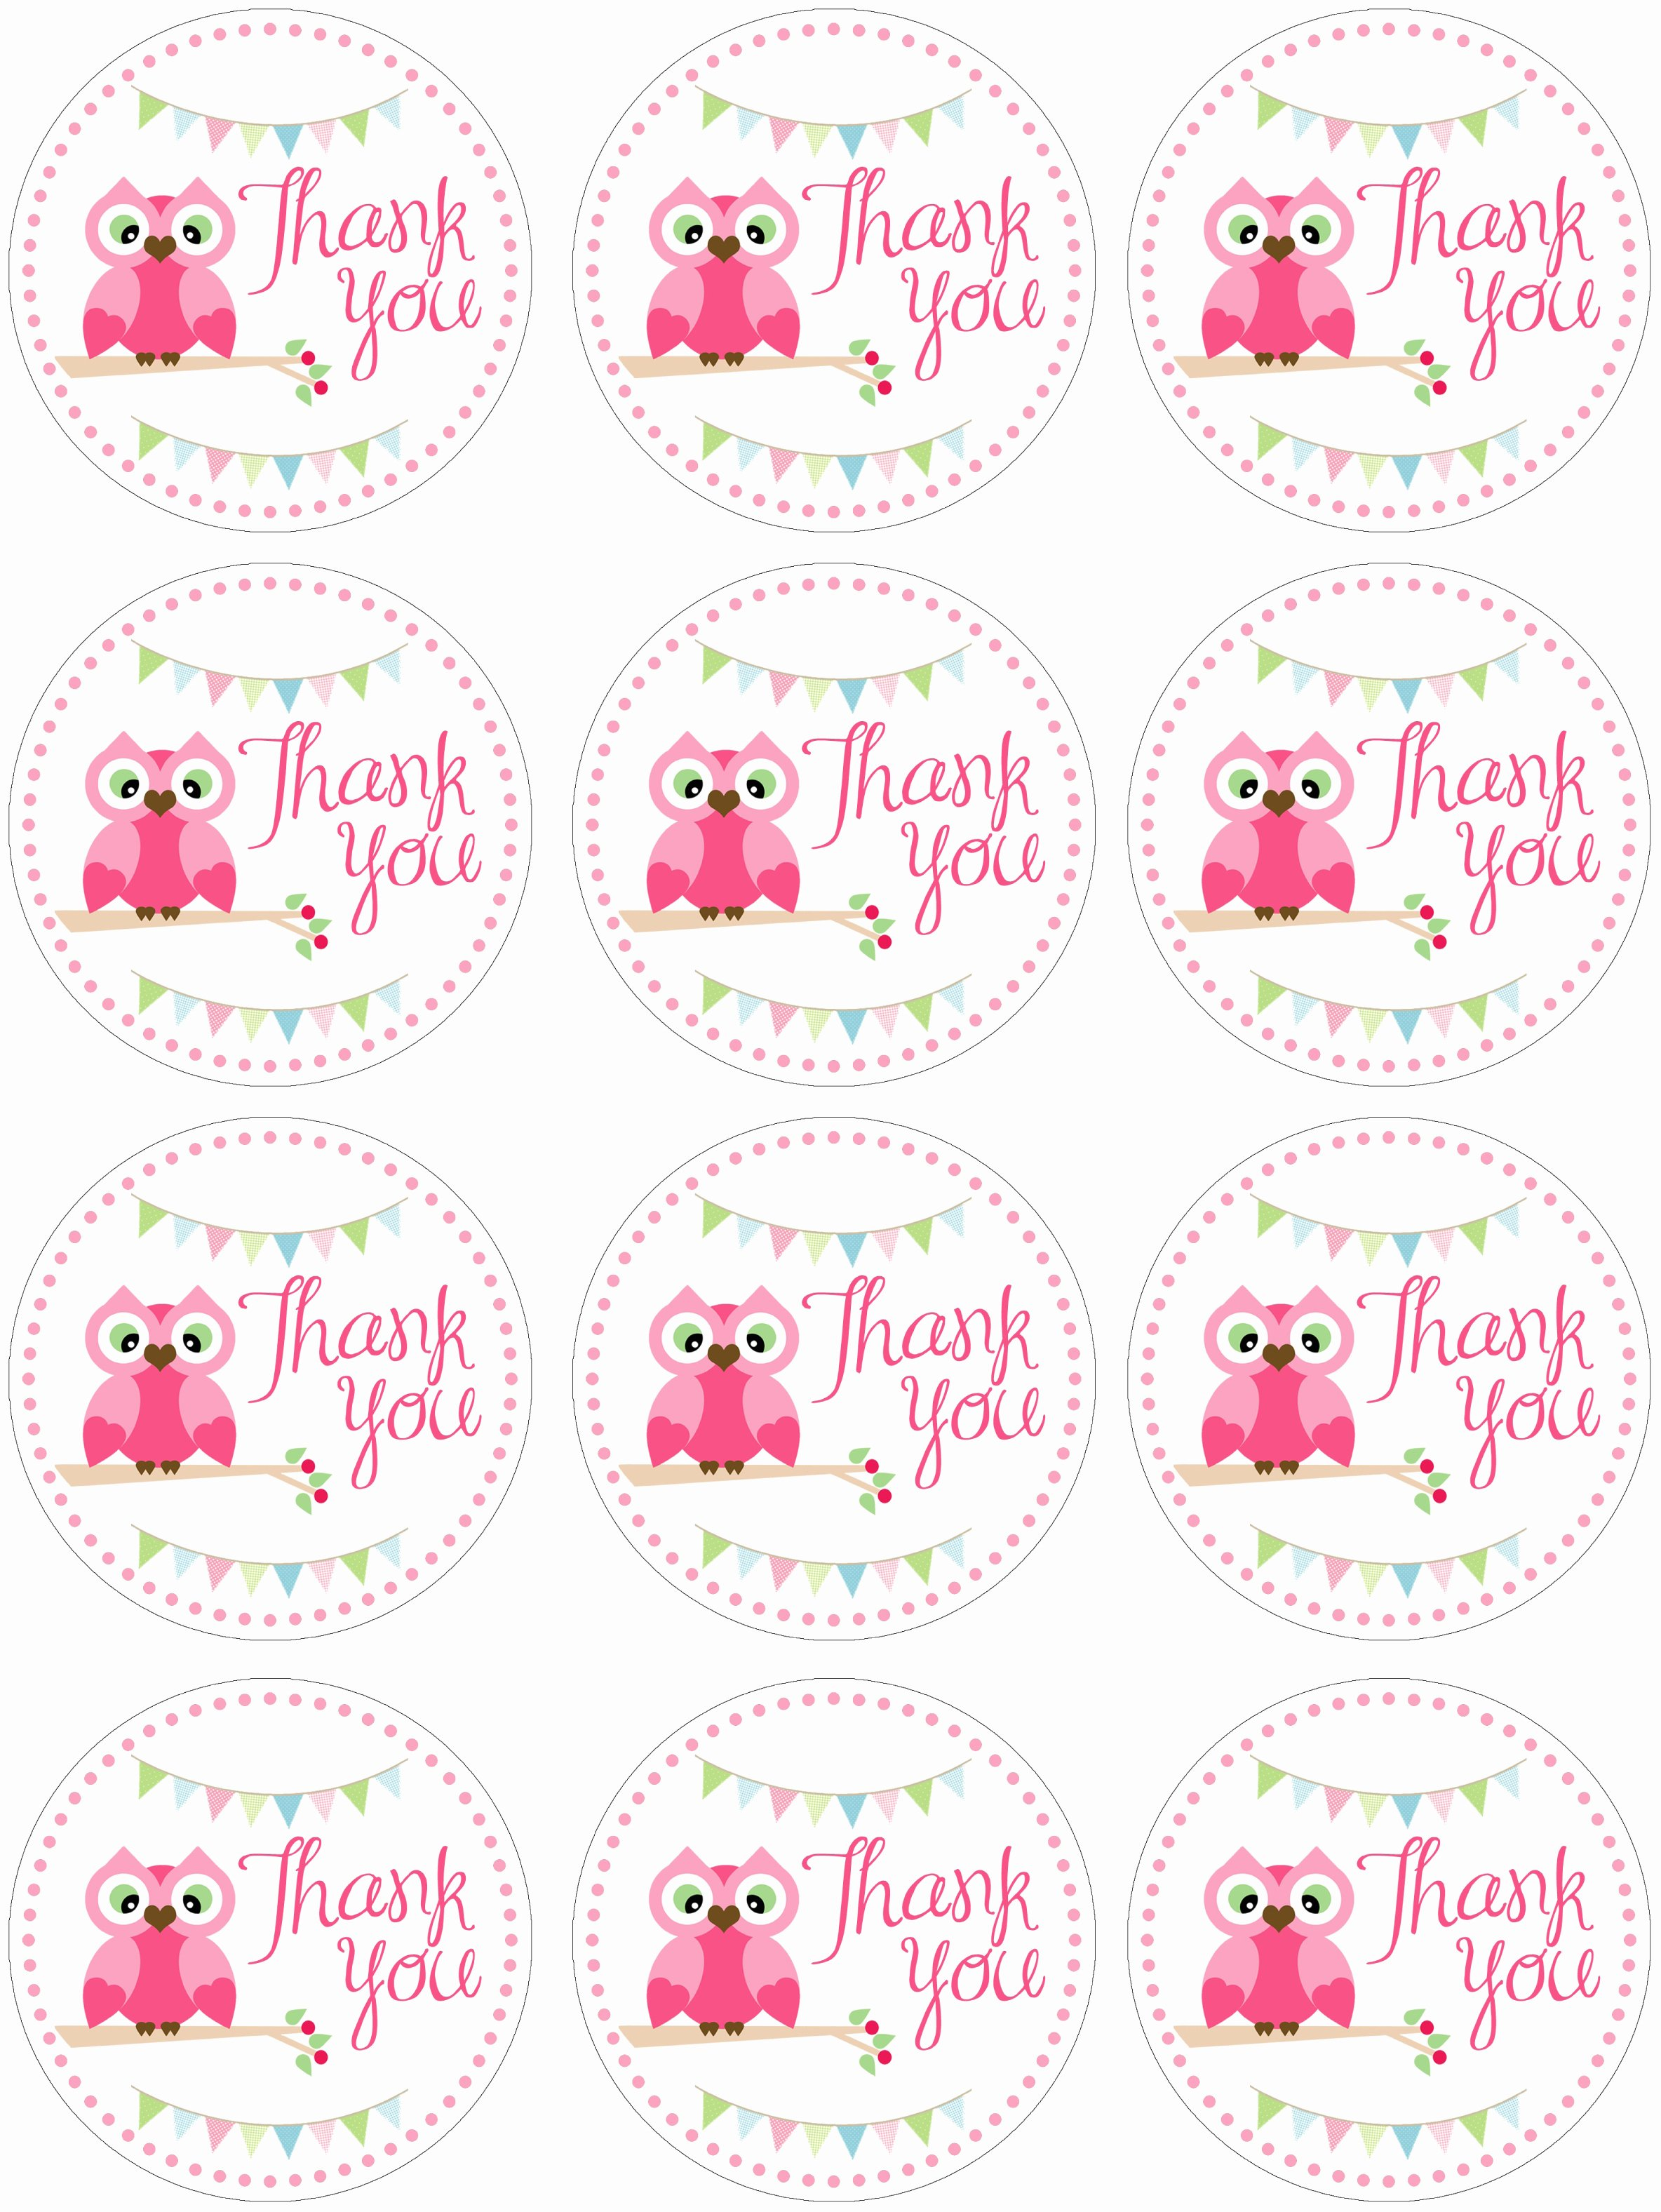 Free Printable Favor Tags Template Printable 360 Degree